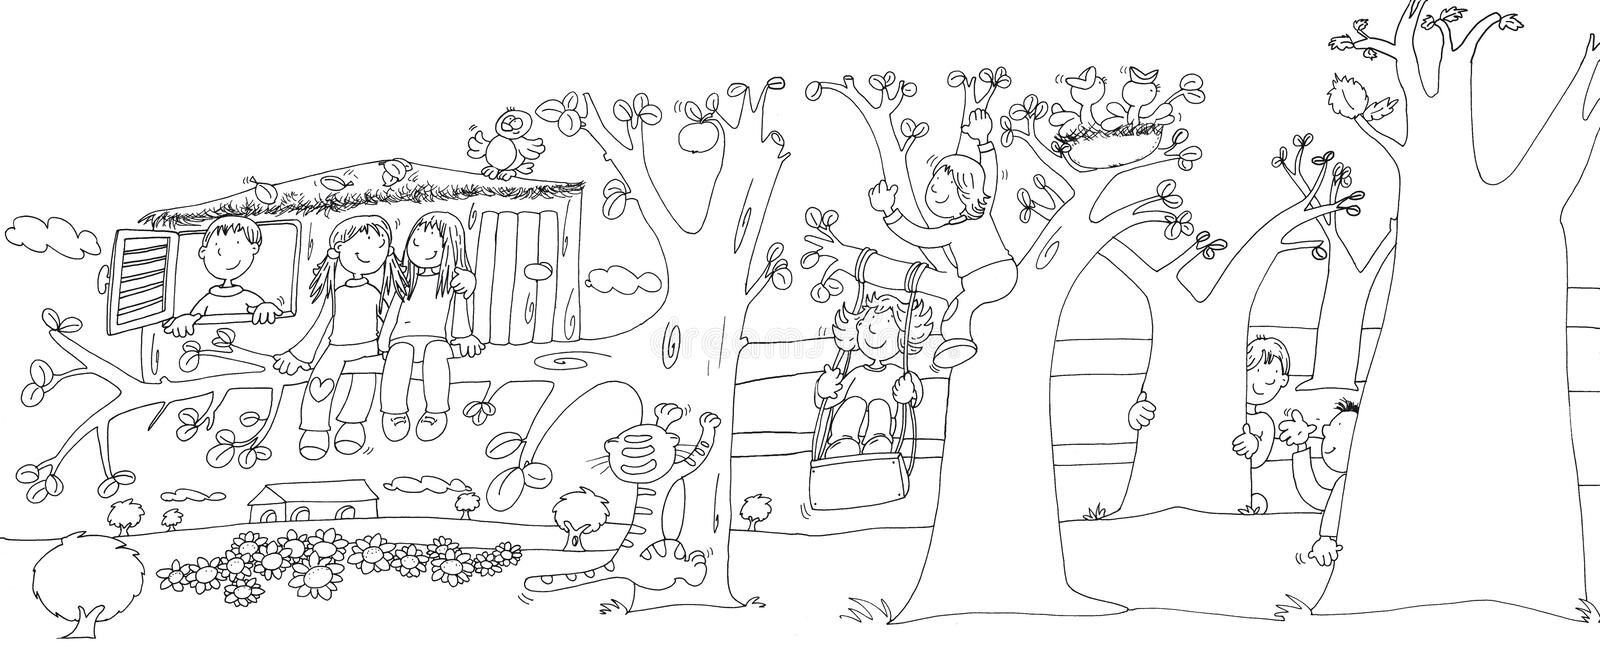 Children in the pond with frogs,sketches and pencil sketches and doodles. Children playing hide and seek behind the trees and the house on the tree illustration stock illustration